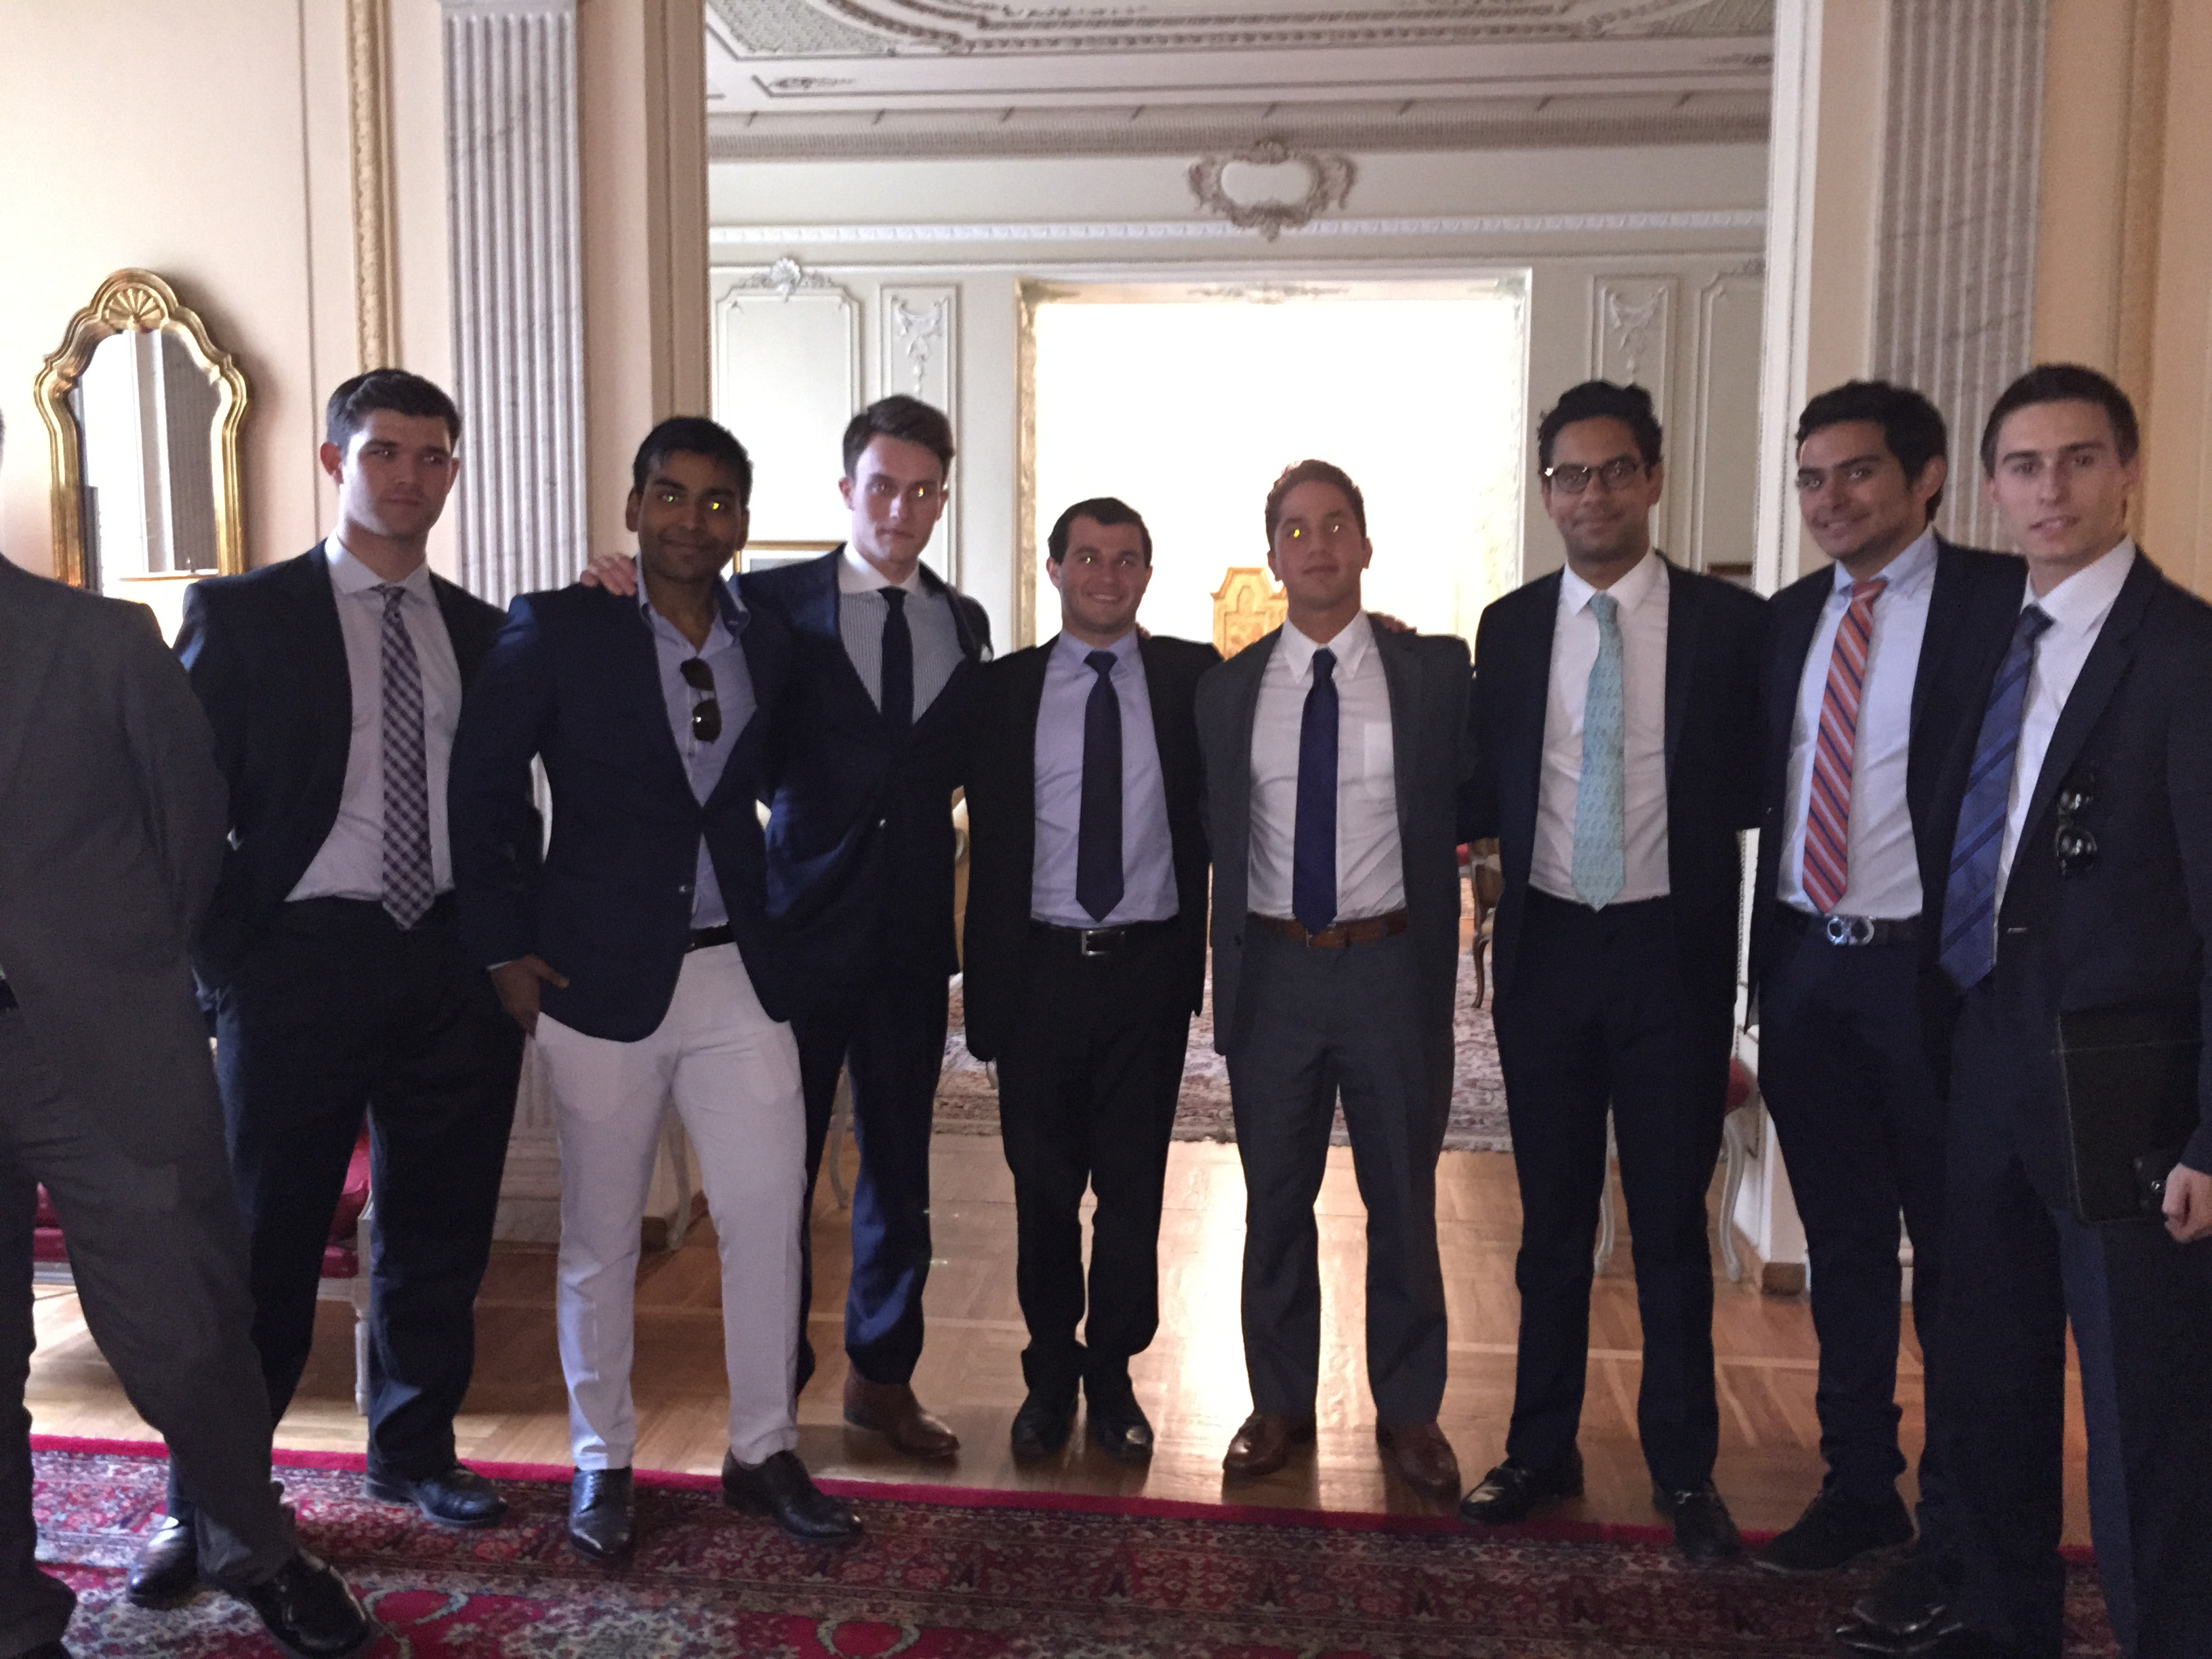 Boys of BRIC at the Consulate